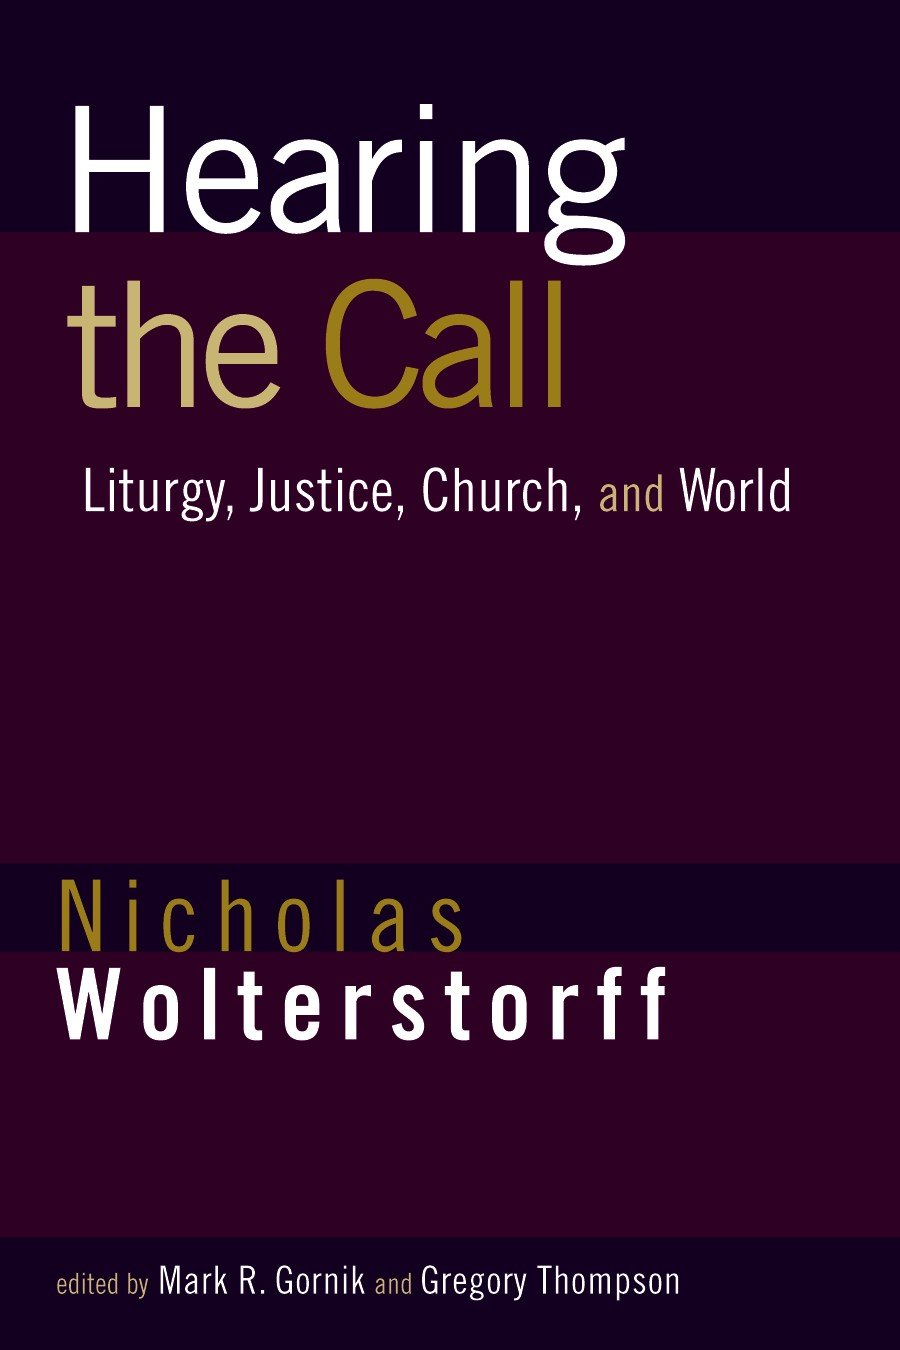 Hearing the Call: Liturgy, Justice, Church, and World Nicholas Wolterstorff, Mark Gornik and Greg Thompson